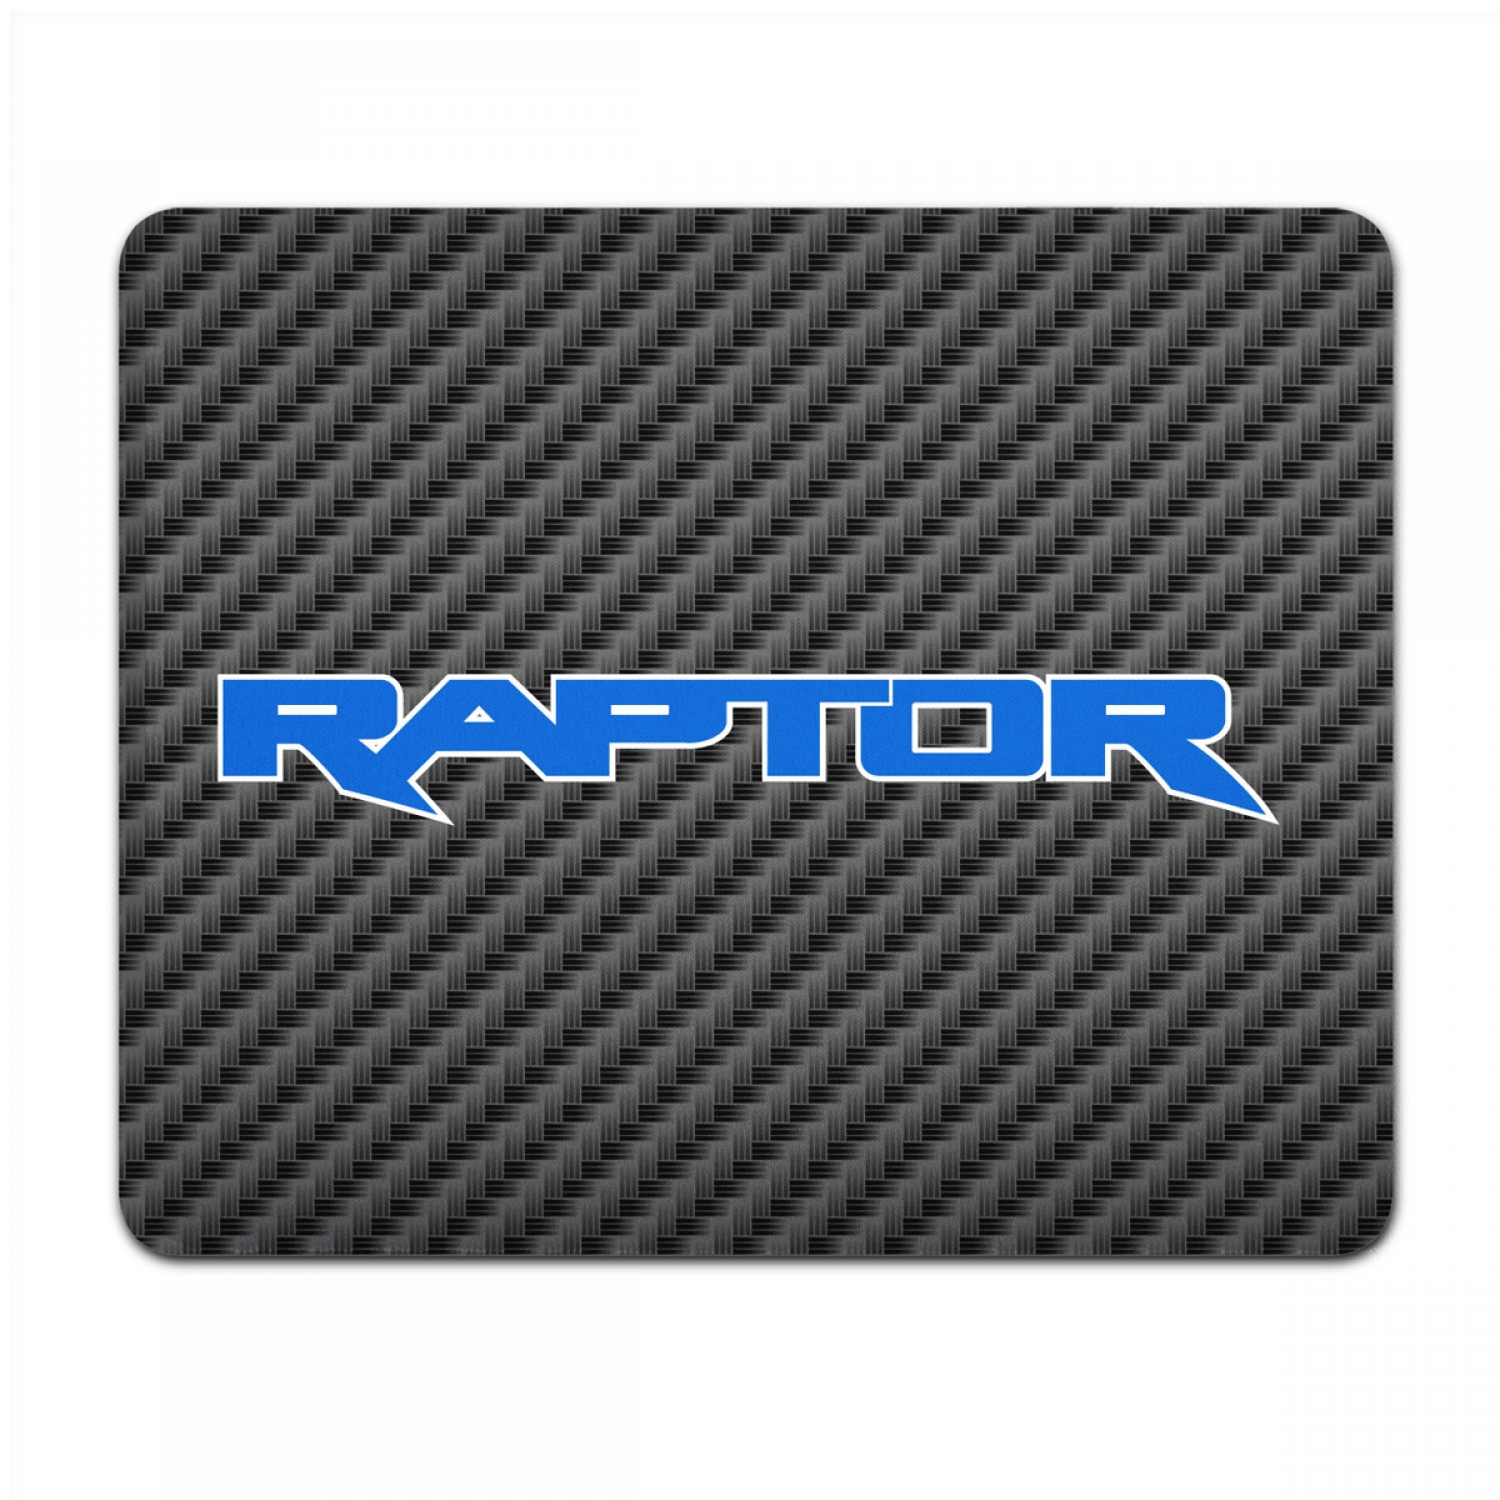 Ford F-150 Raptor 2017 in Blue Black Carbon Fiber Texture Graphic PC Mouse Pad